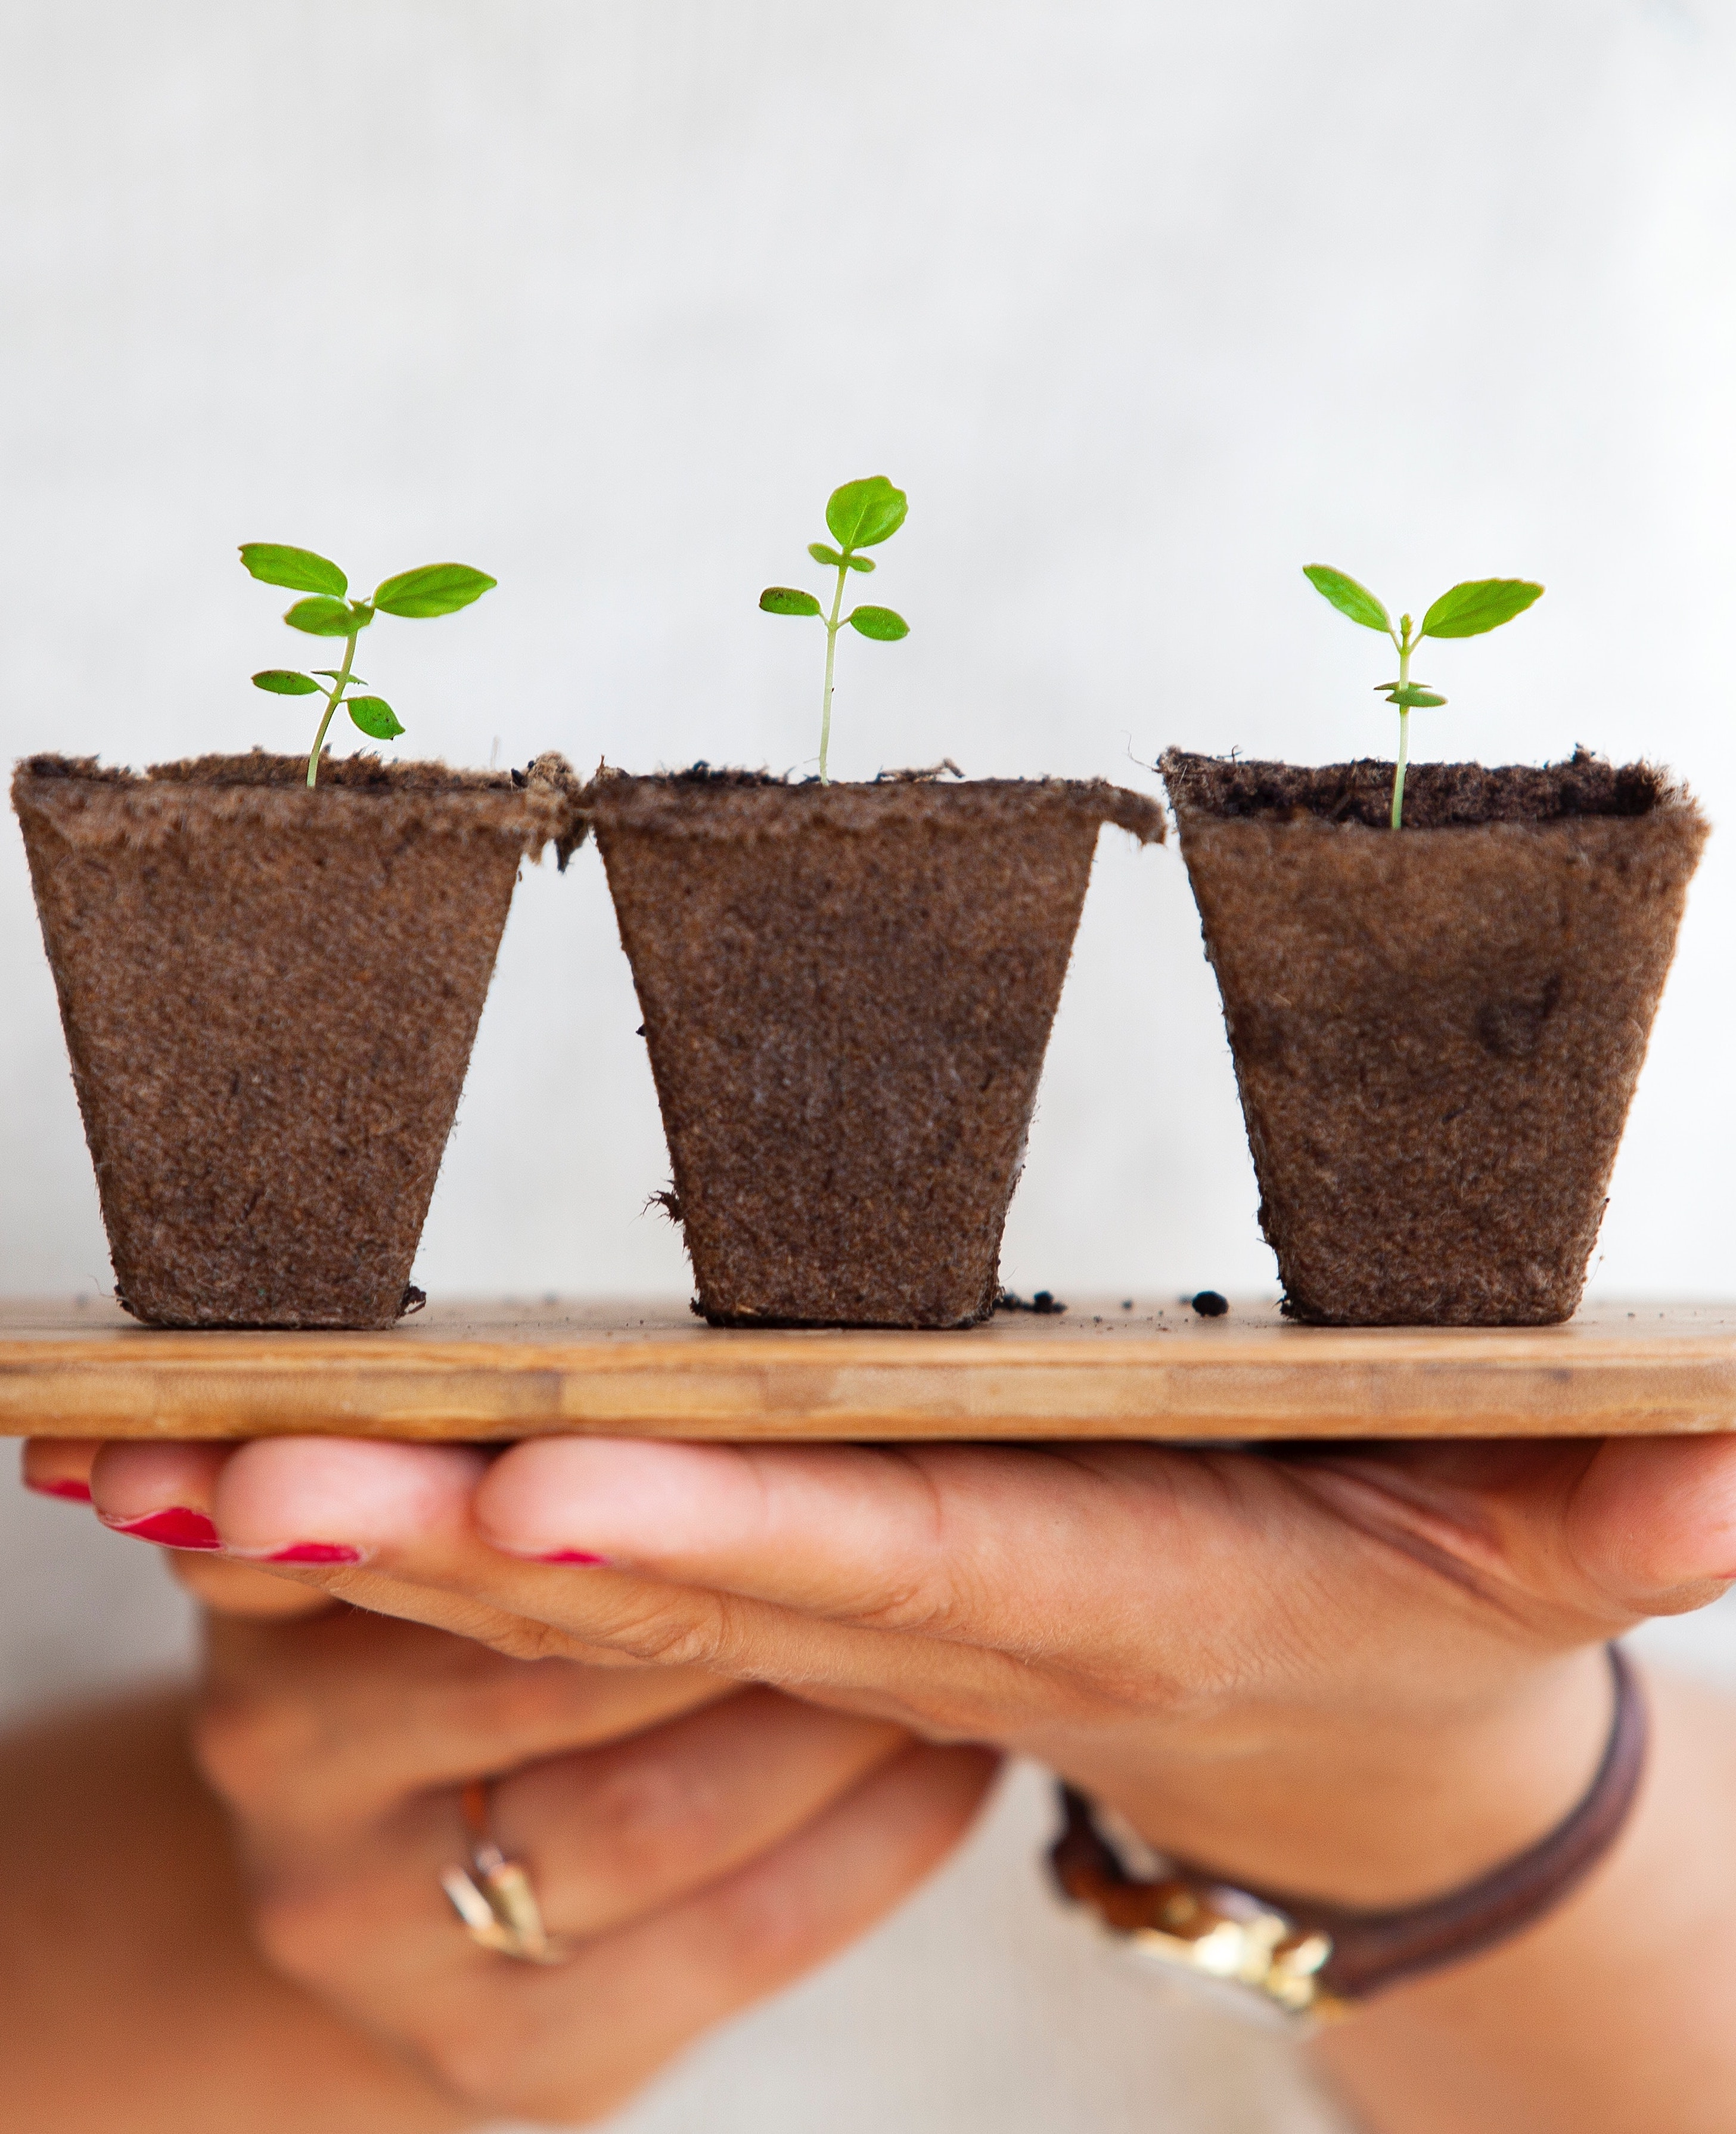 growing plants, environment and sustinability